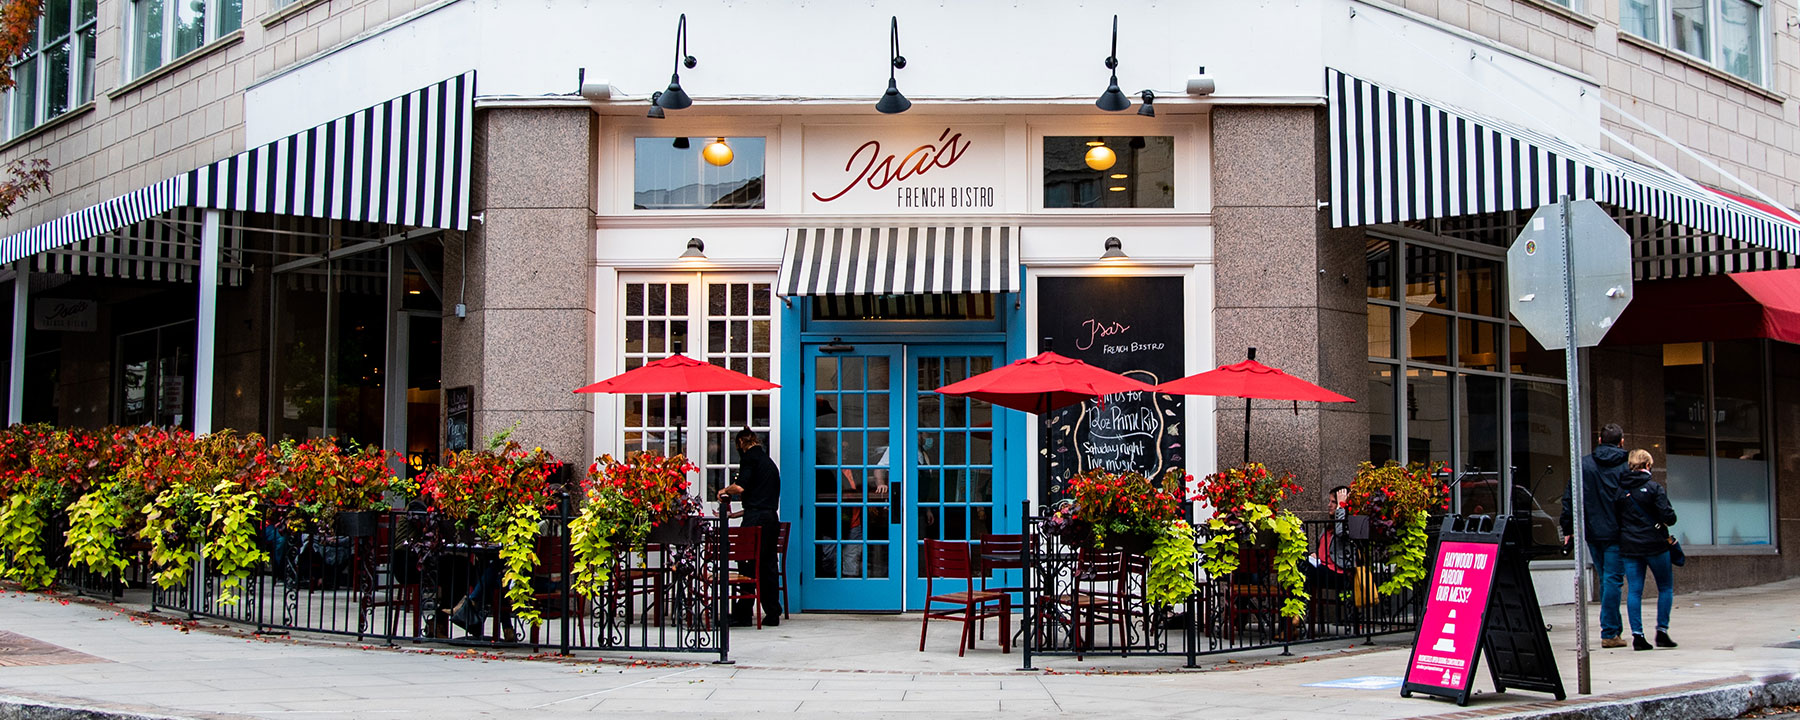 Isas French Bistro Retaurant by FIRC Group Asheville Top